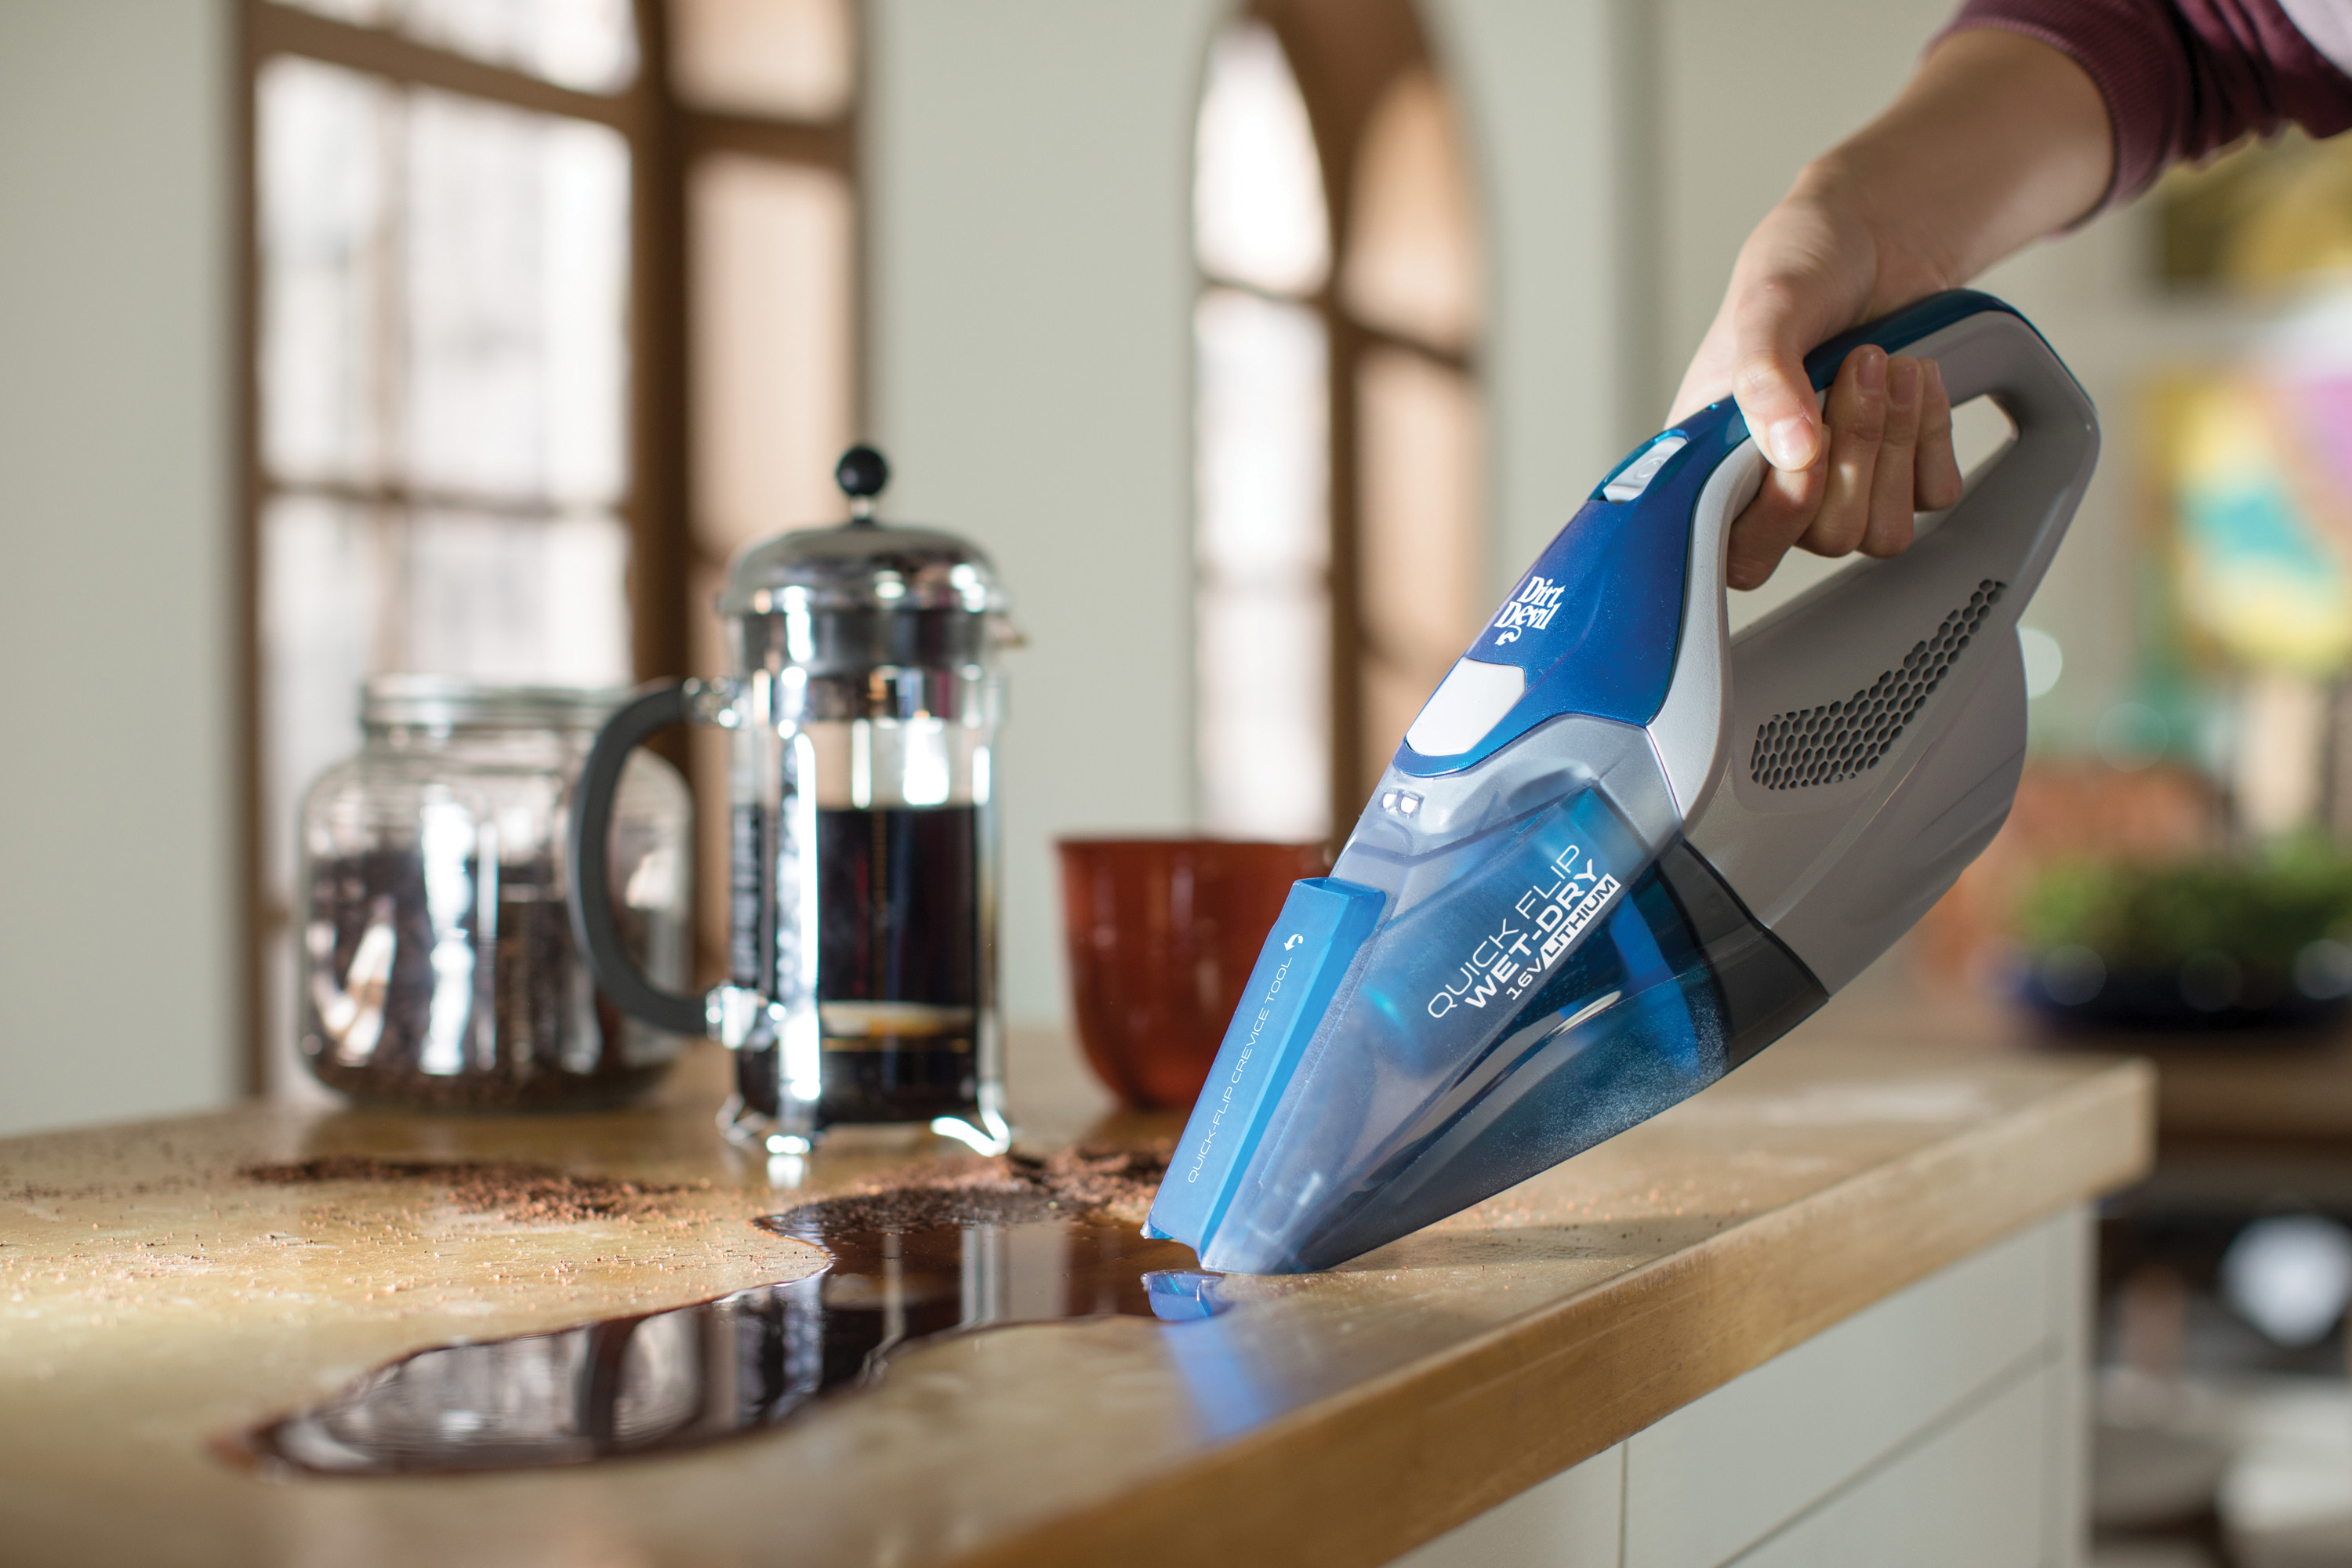 Model using a hand vacuum to vacuum up slipped coffee